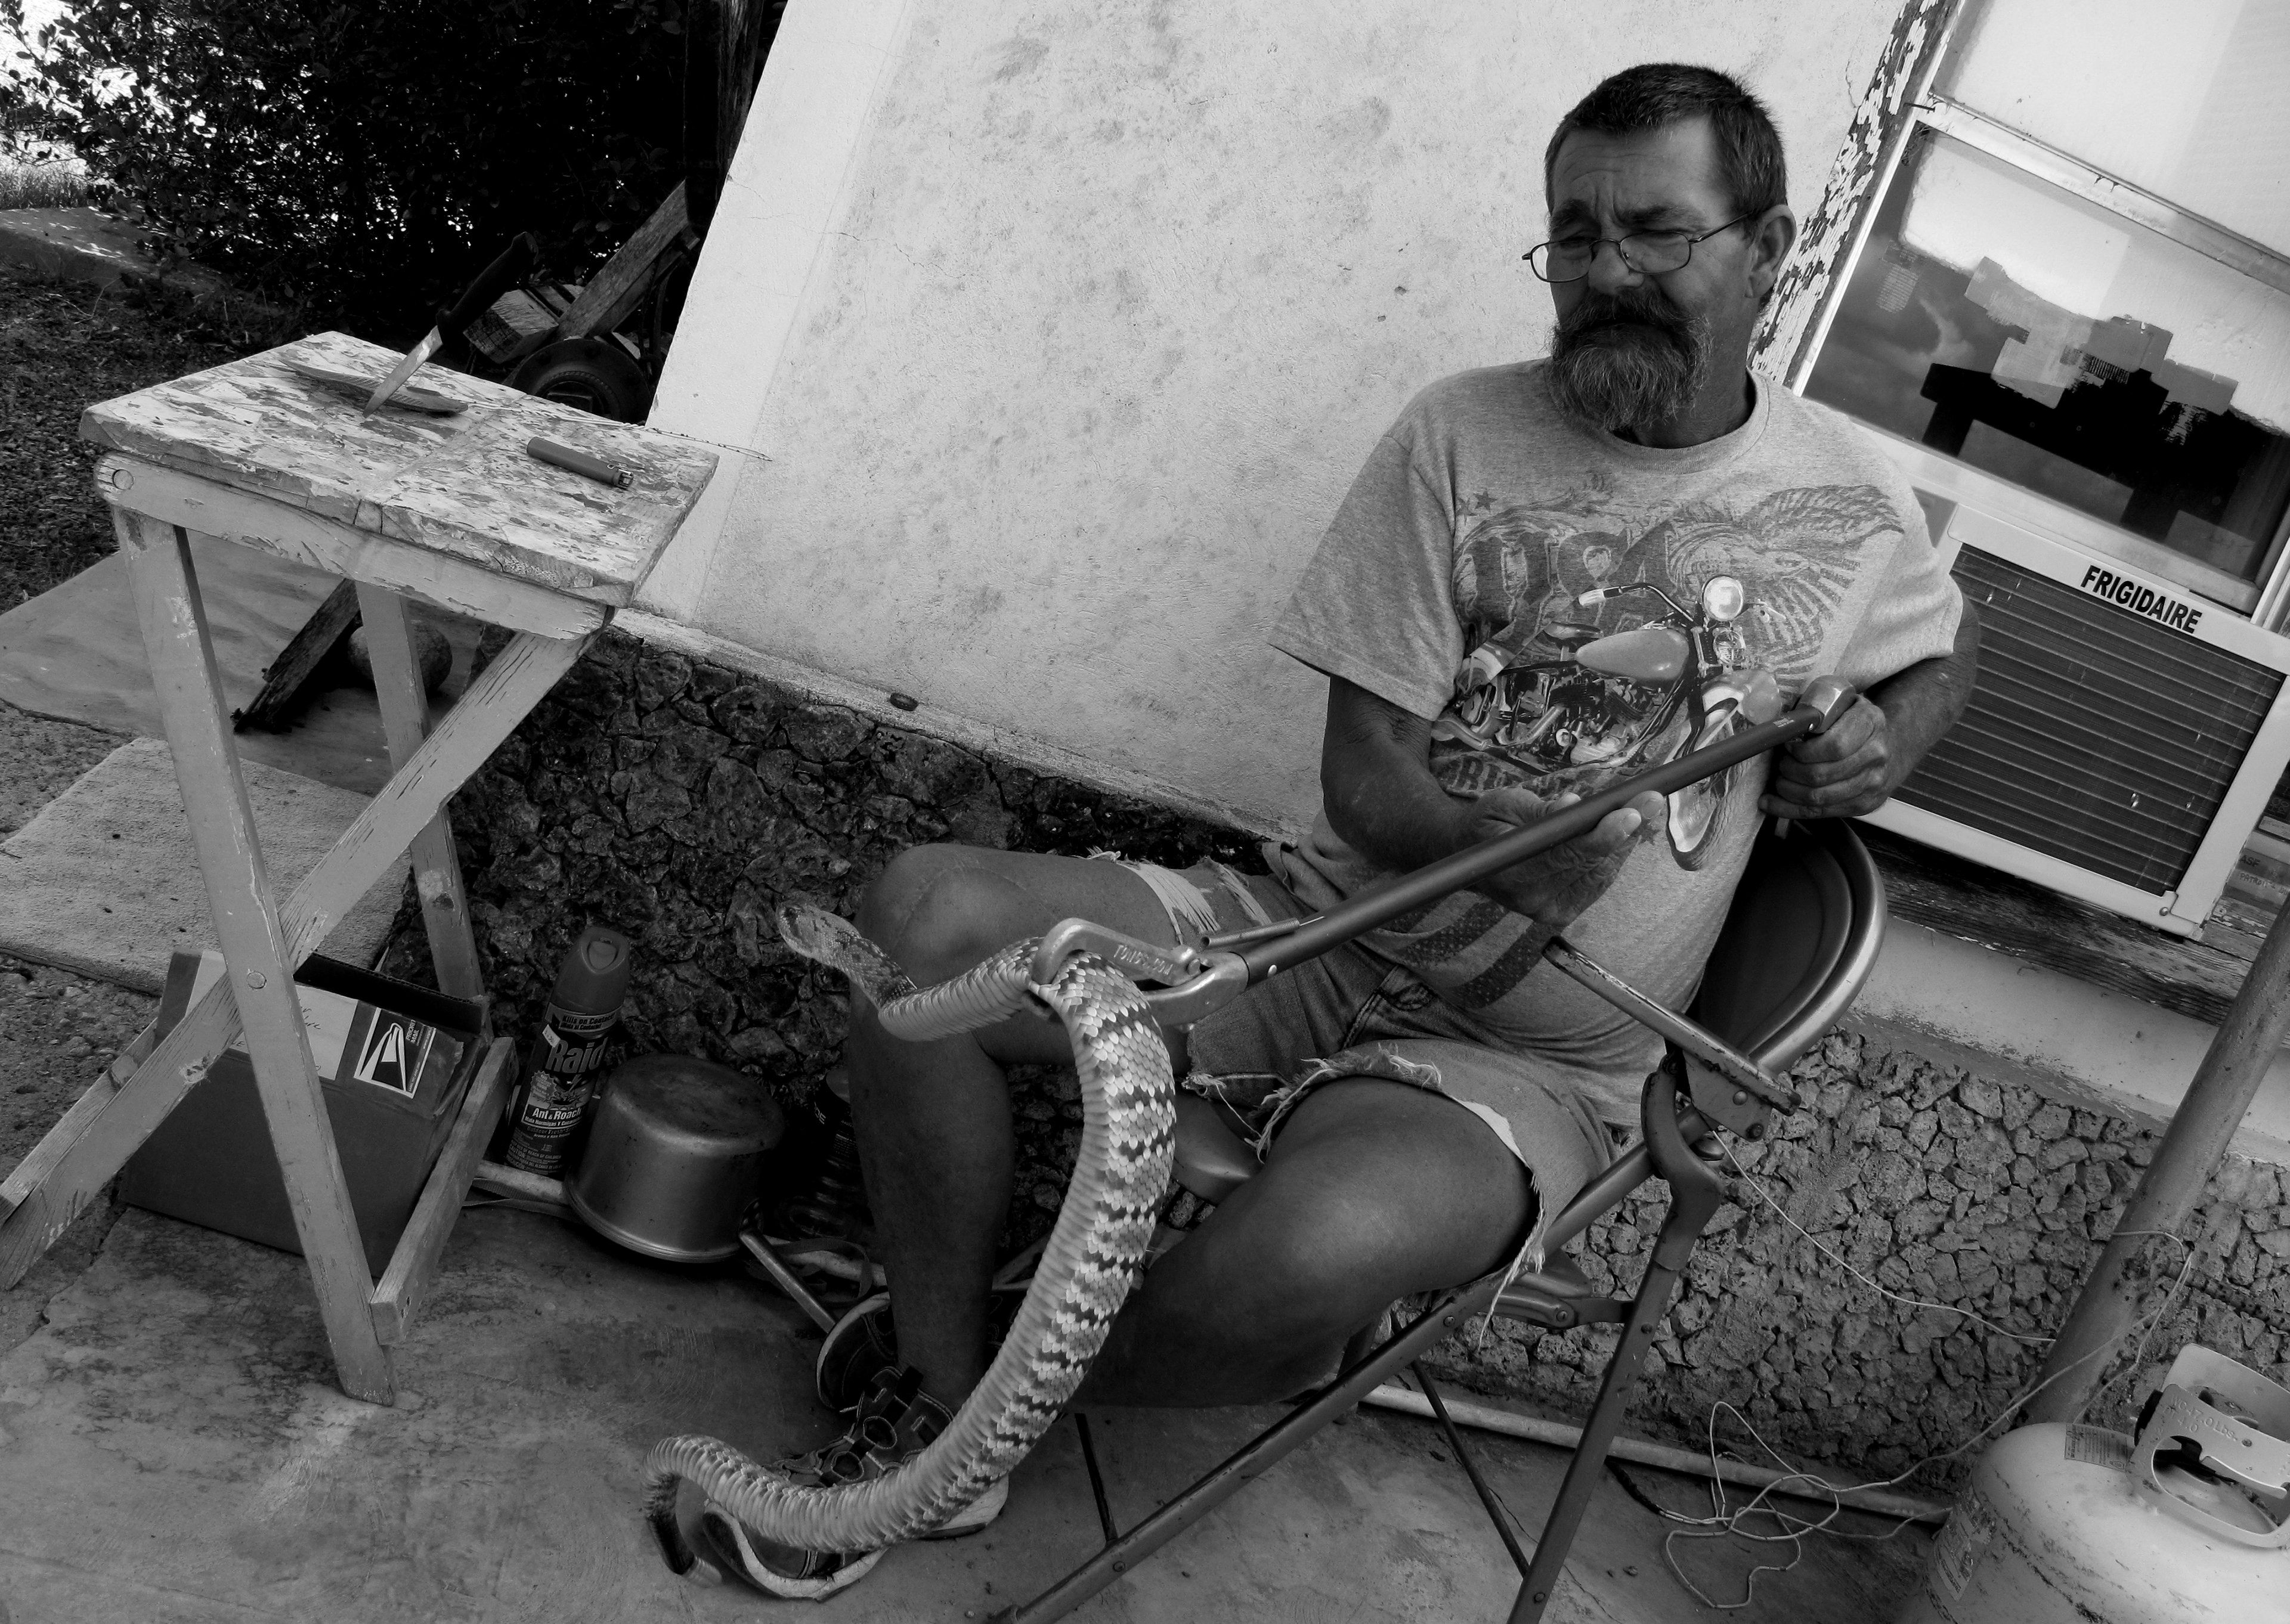 A man sitting on a chair holds a rattle snake in a gripper outside of a building